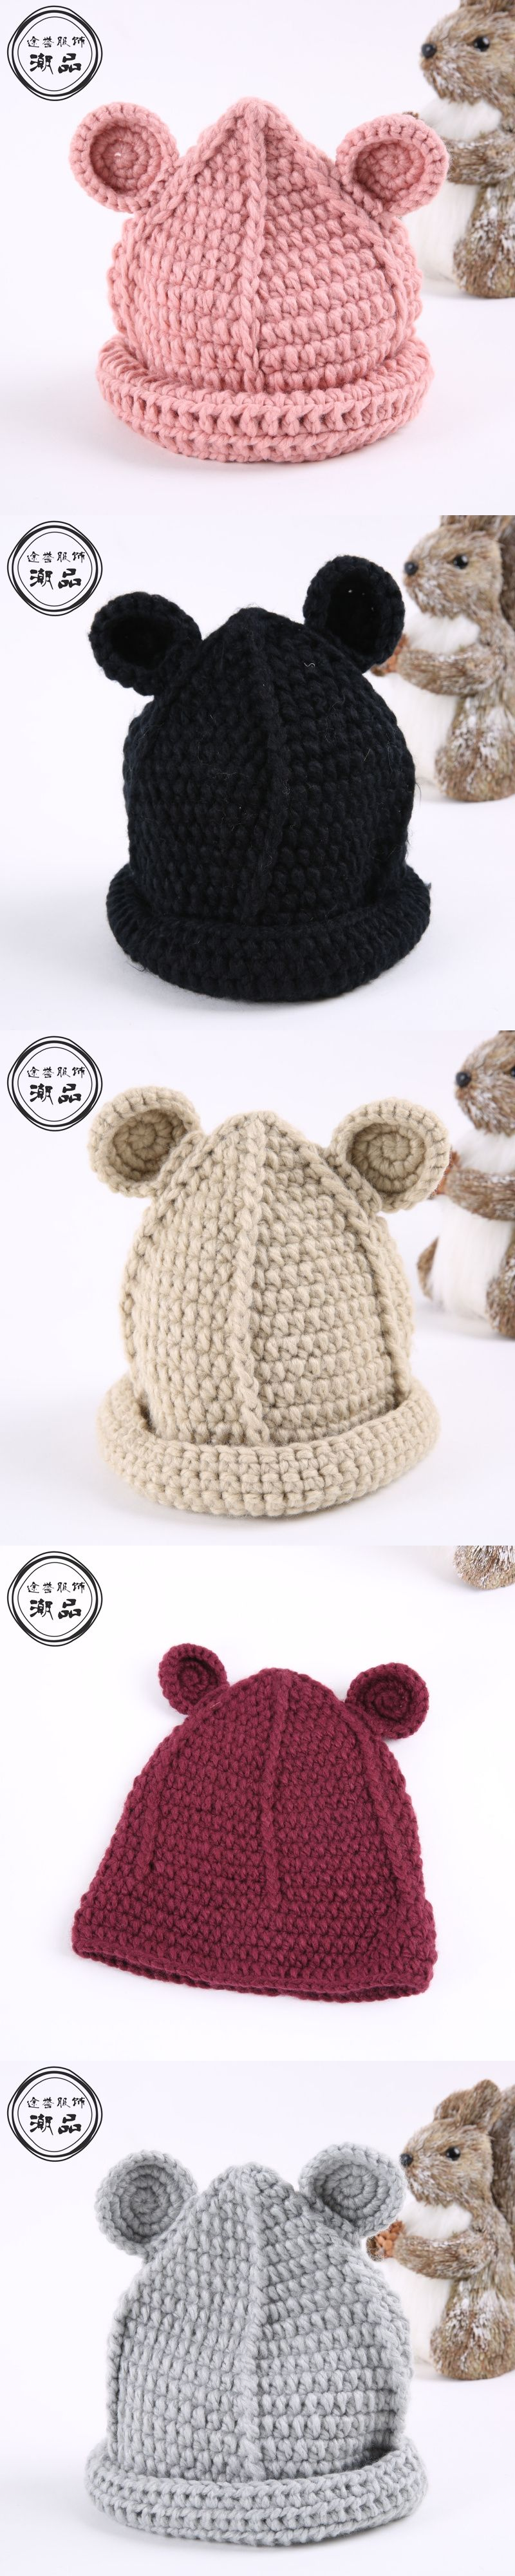 e55807f3de9 Pure Handmade Funny Cap Autumn Winter Warm Childreb Beanie Hat Girls Boys  Caps Cute